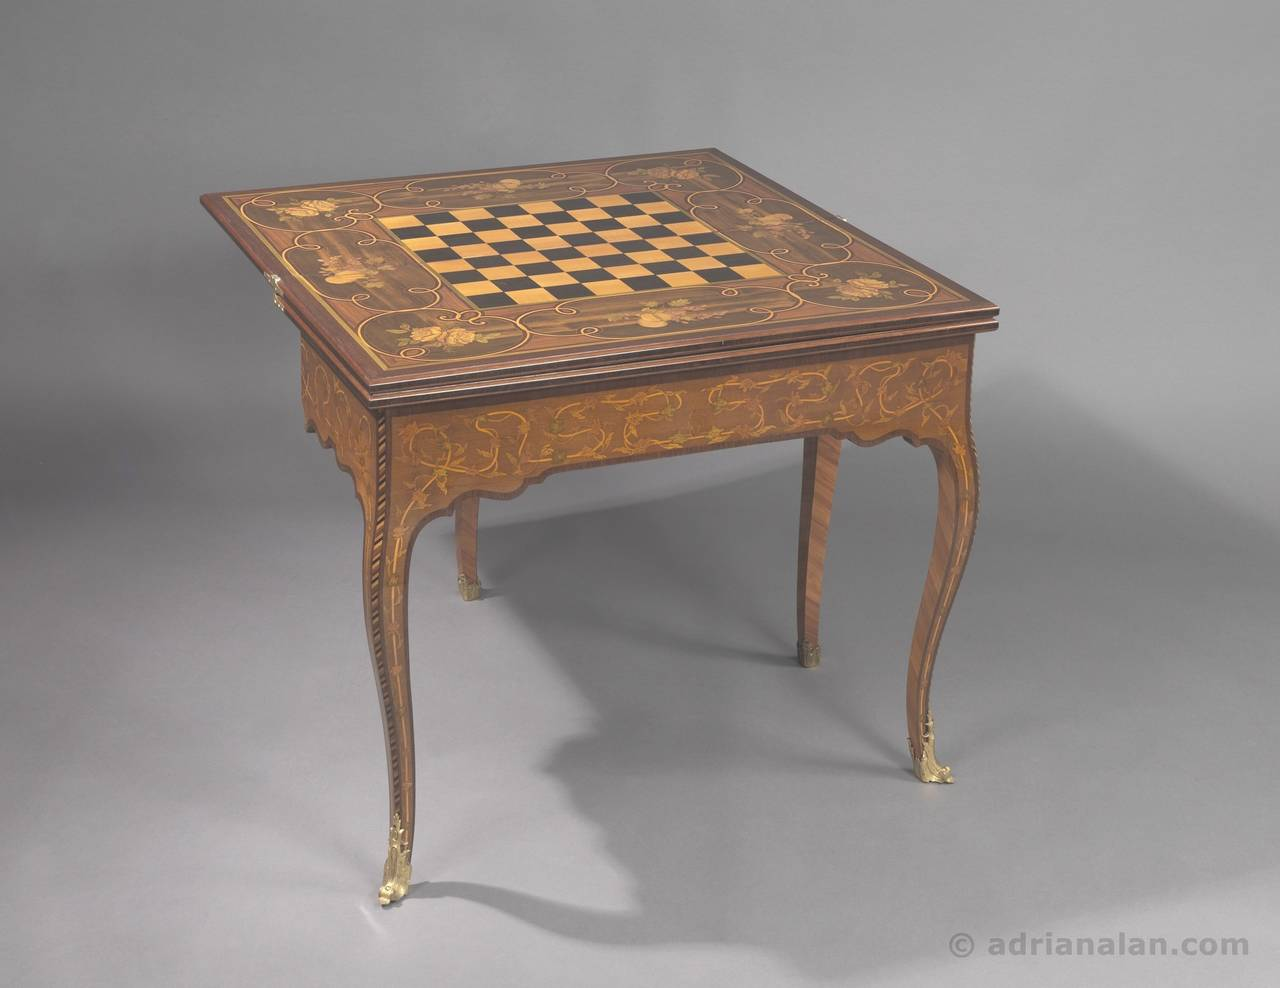 A Rare And Highly Important Russian Imperial Period Gilt Bronze Mounted And  Marquetry Inlaid,